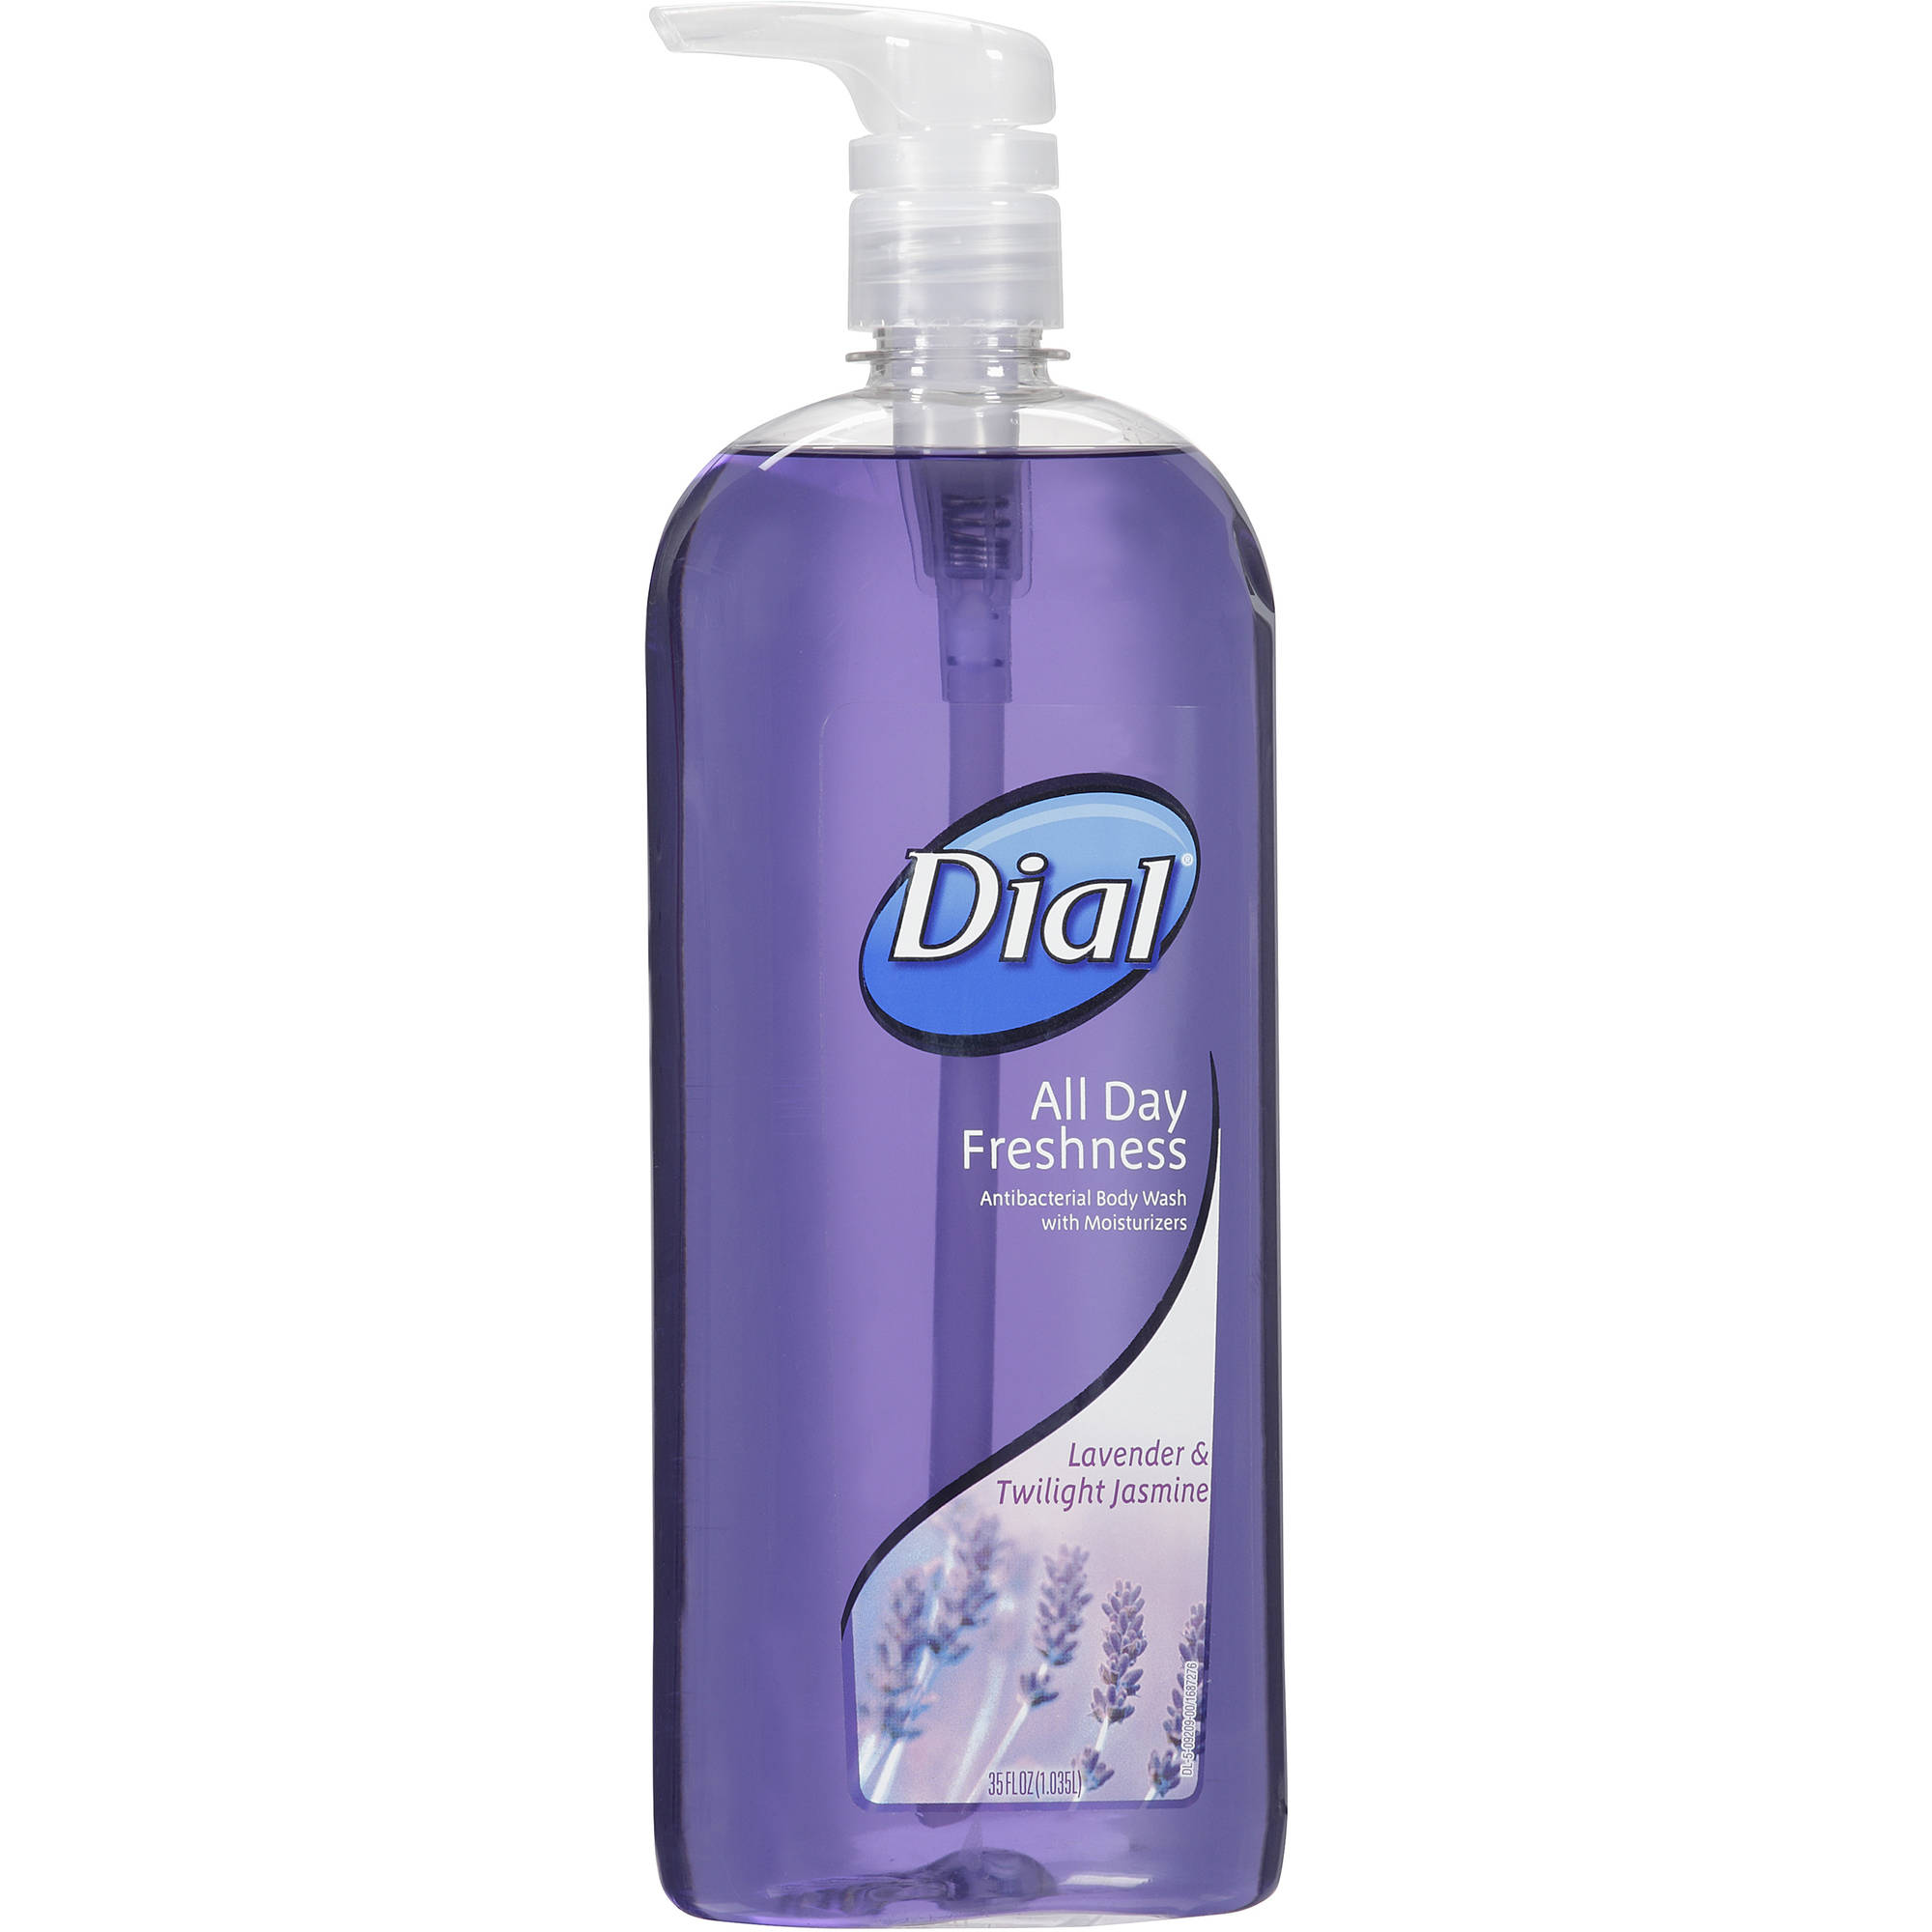 Dial All Day Freshness Lavender & Twilight Jasmine Antibacterial Body Wash with Moisturizers, 35 fl oz